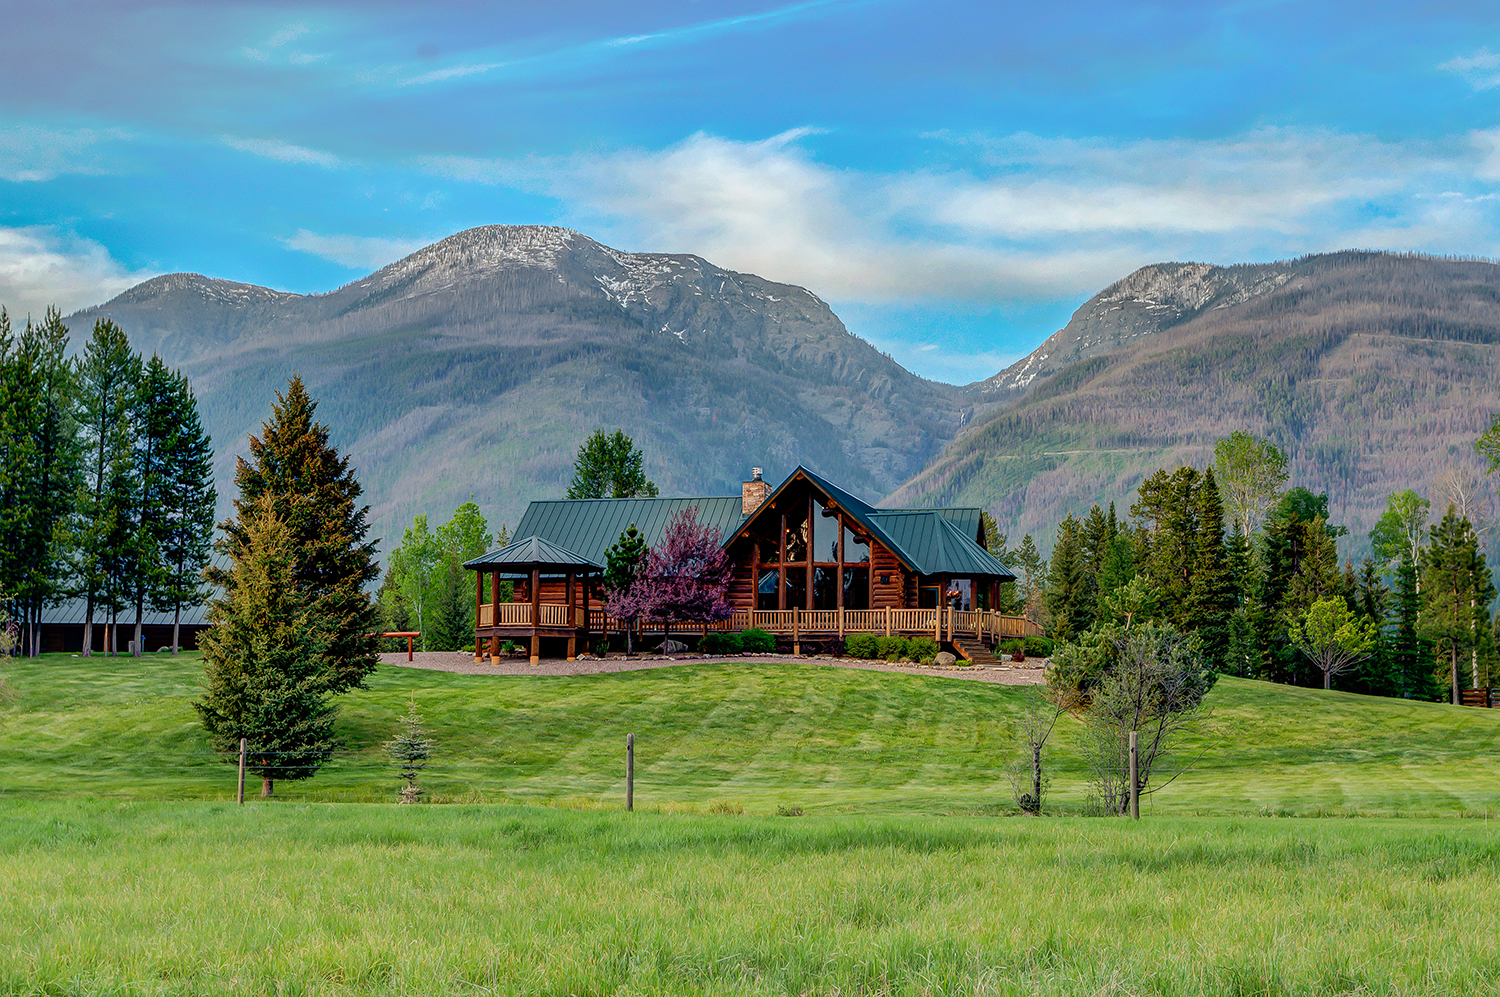 Single Family Home for Sale at 870 Smith Meadows Lane Condon, Montana, 59826 United States